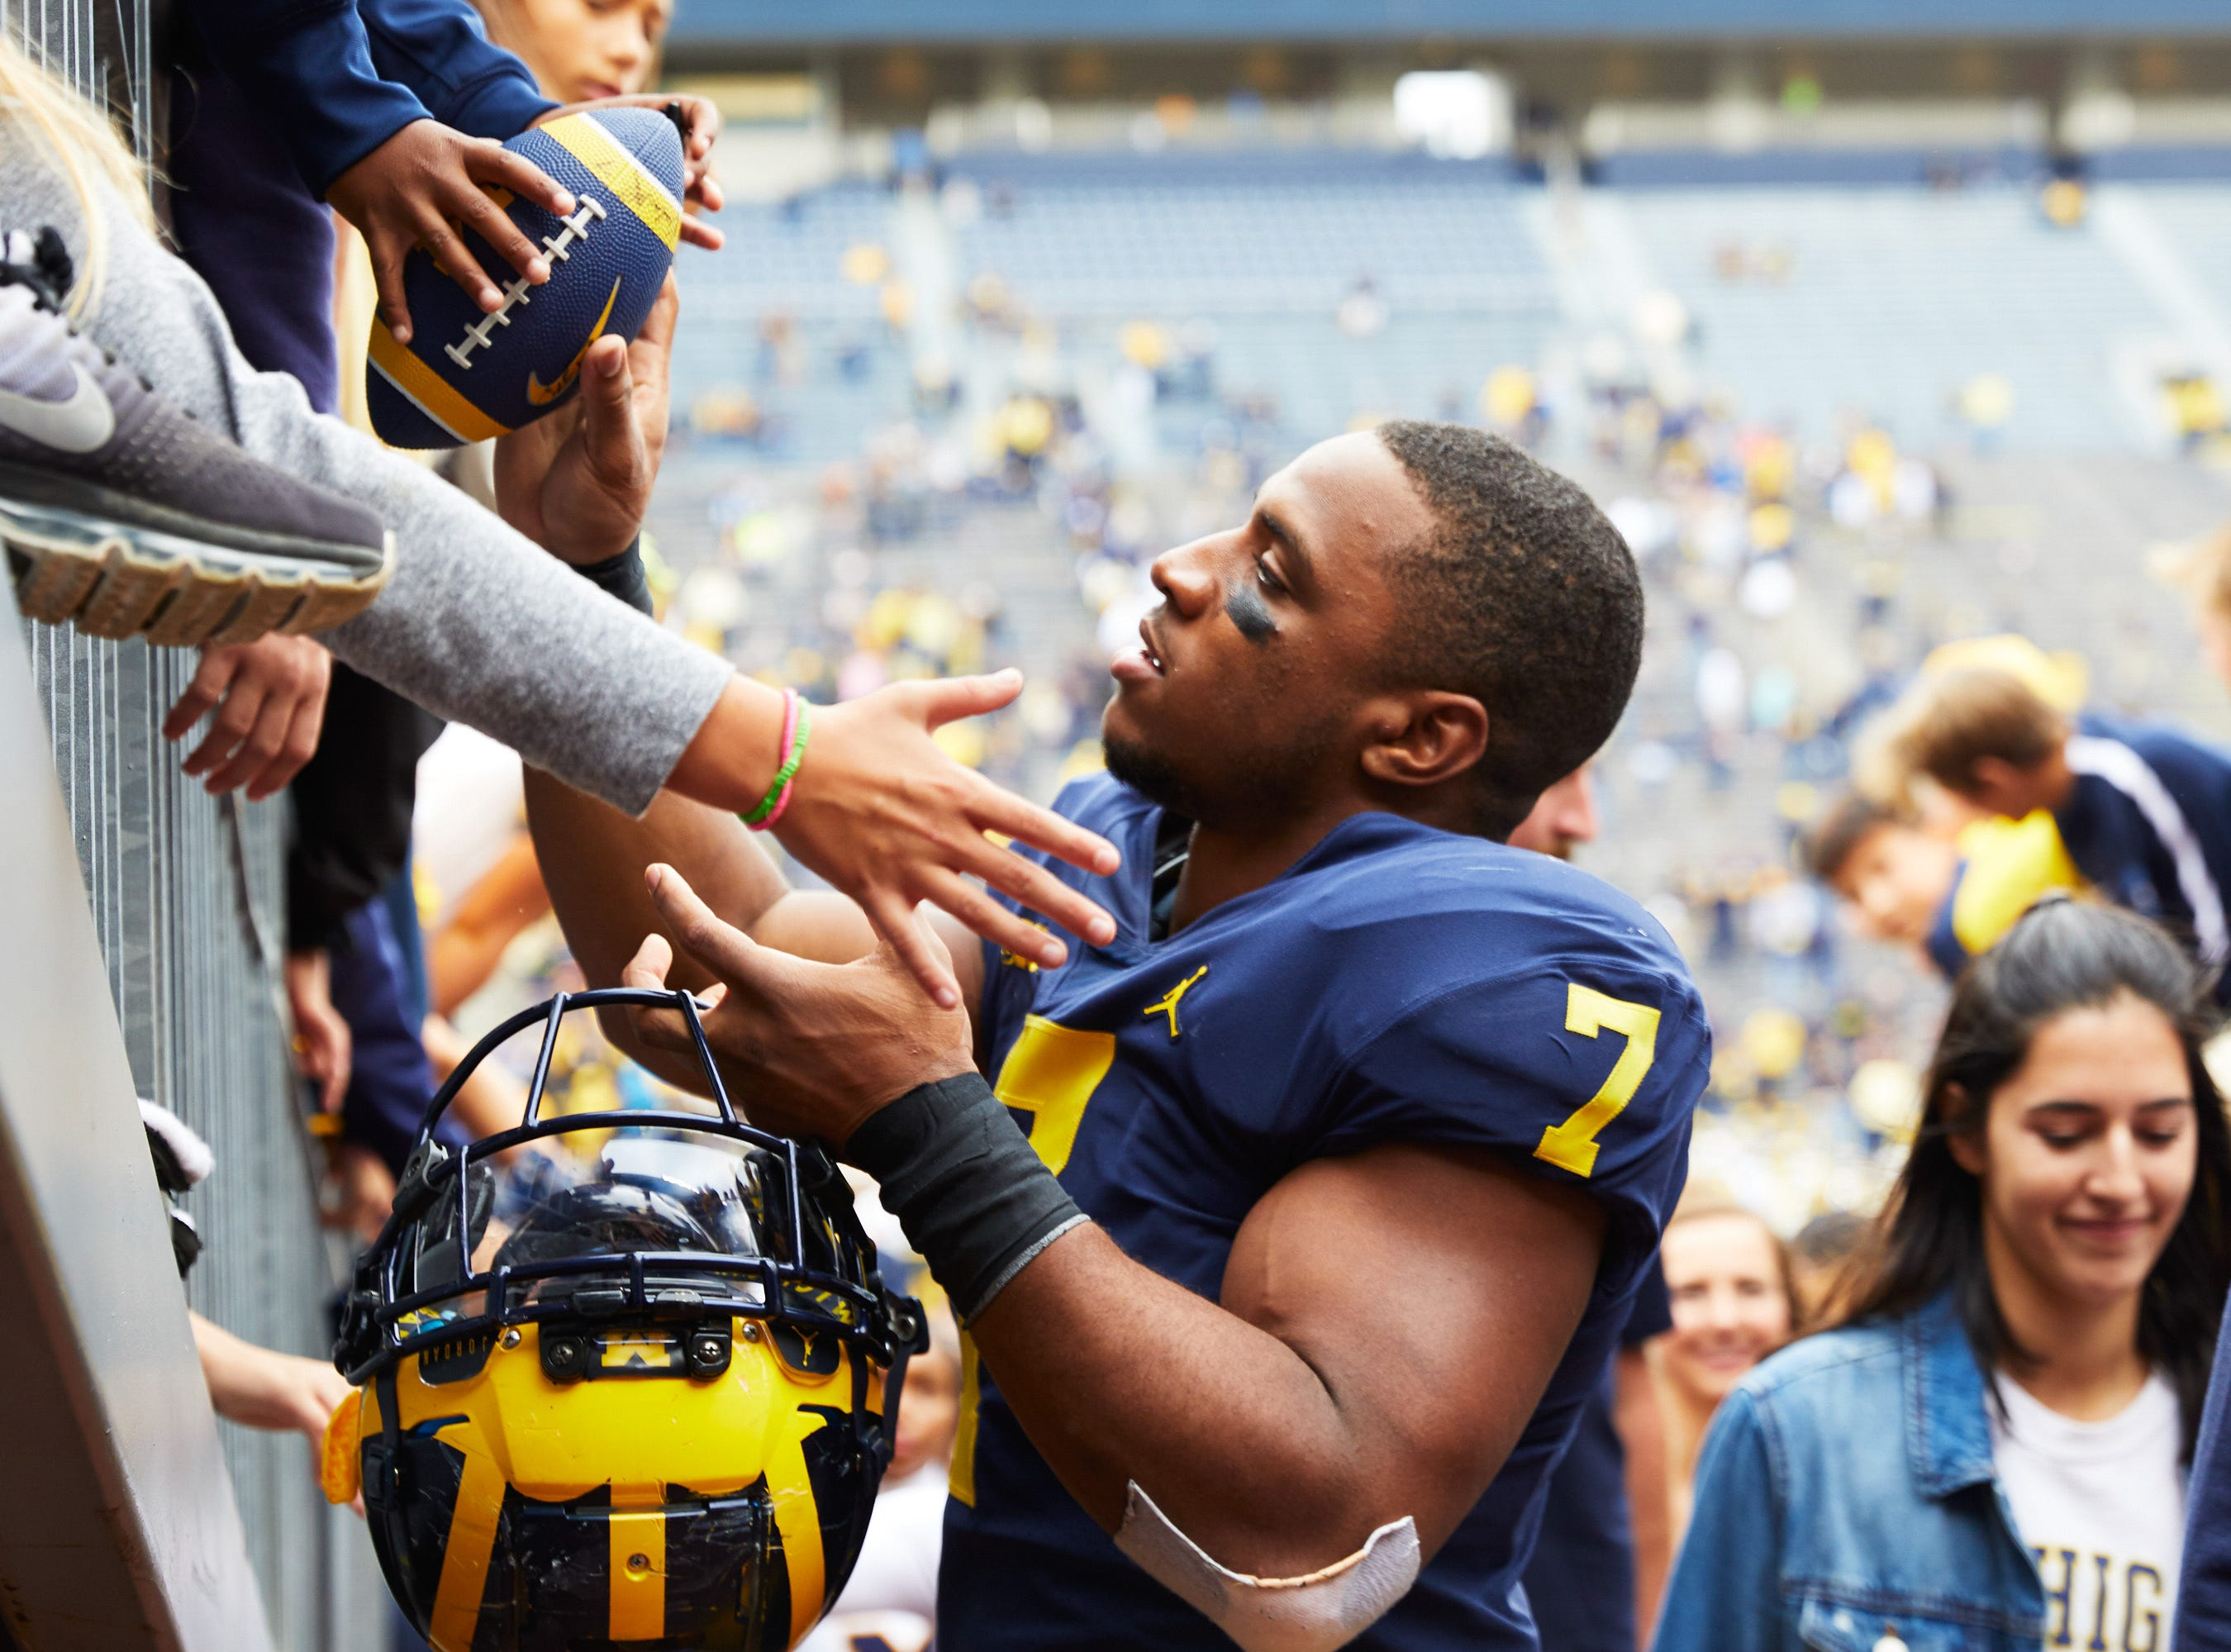 Sep 8, 2018; Ann Arbor, MI, USA; Michigan Wolverines linebacker Khaleke Hudson (7) signs an autograph after the game against the Western Michigan Broncos at Michigan Stadium. Mandatory Credit: Rick Osentoski-USA TODAY Sports